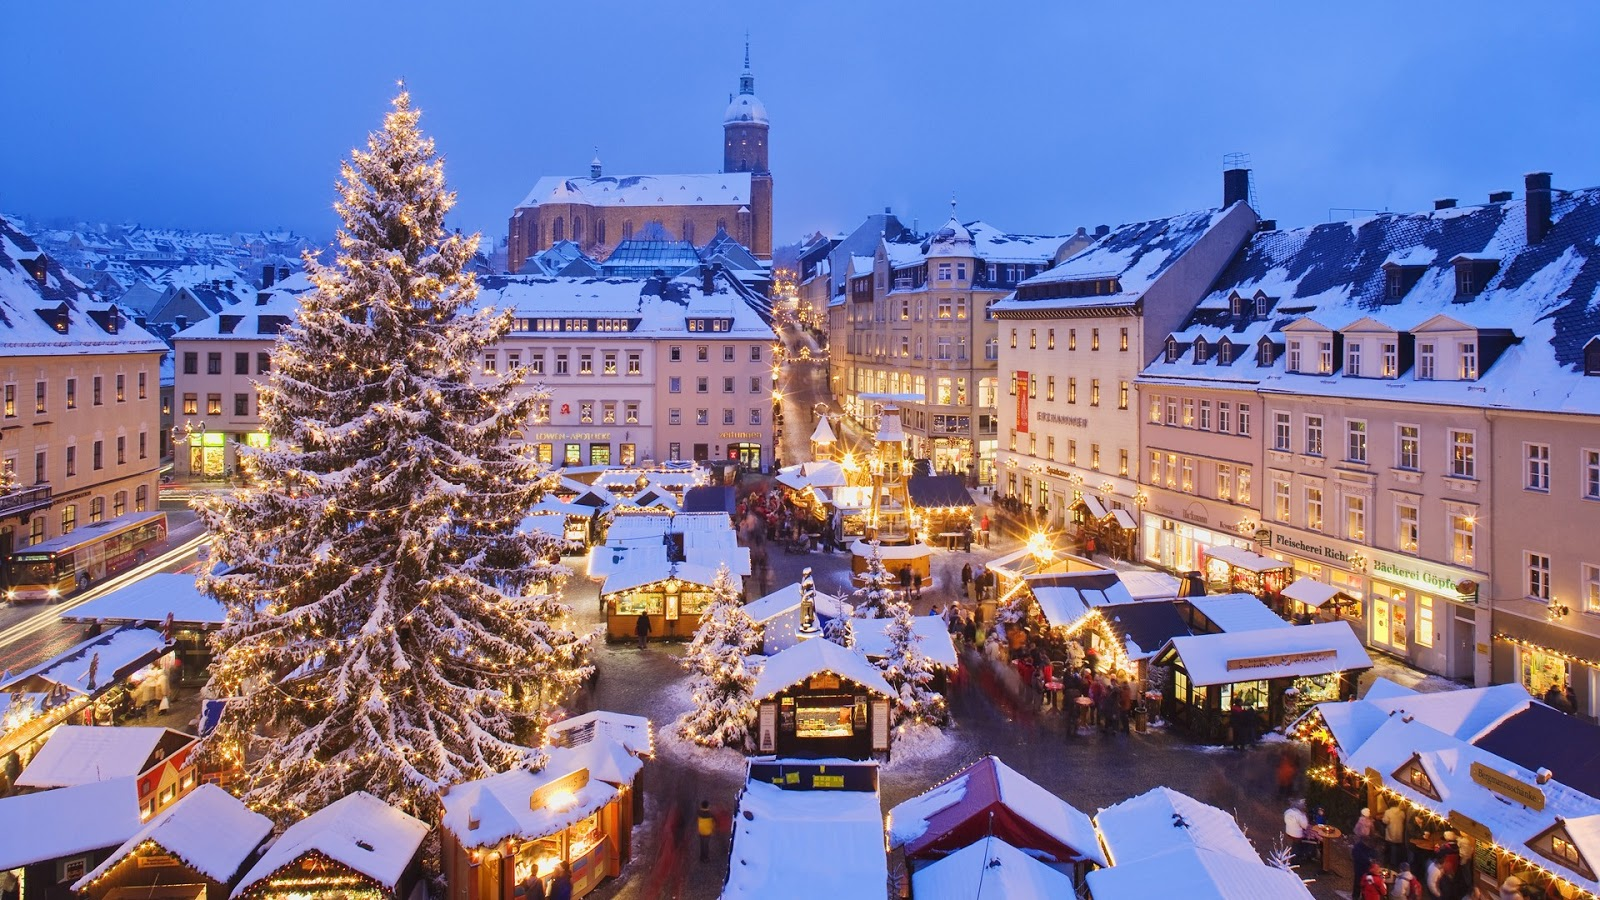 13 Best Christmas Markets in Germany